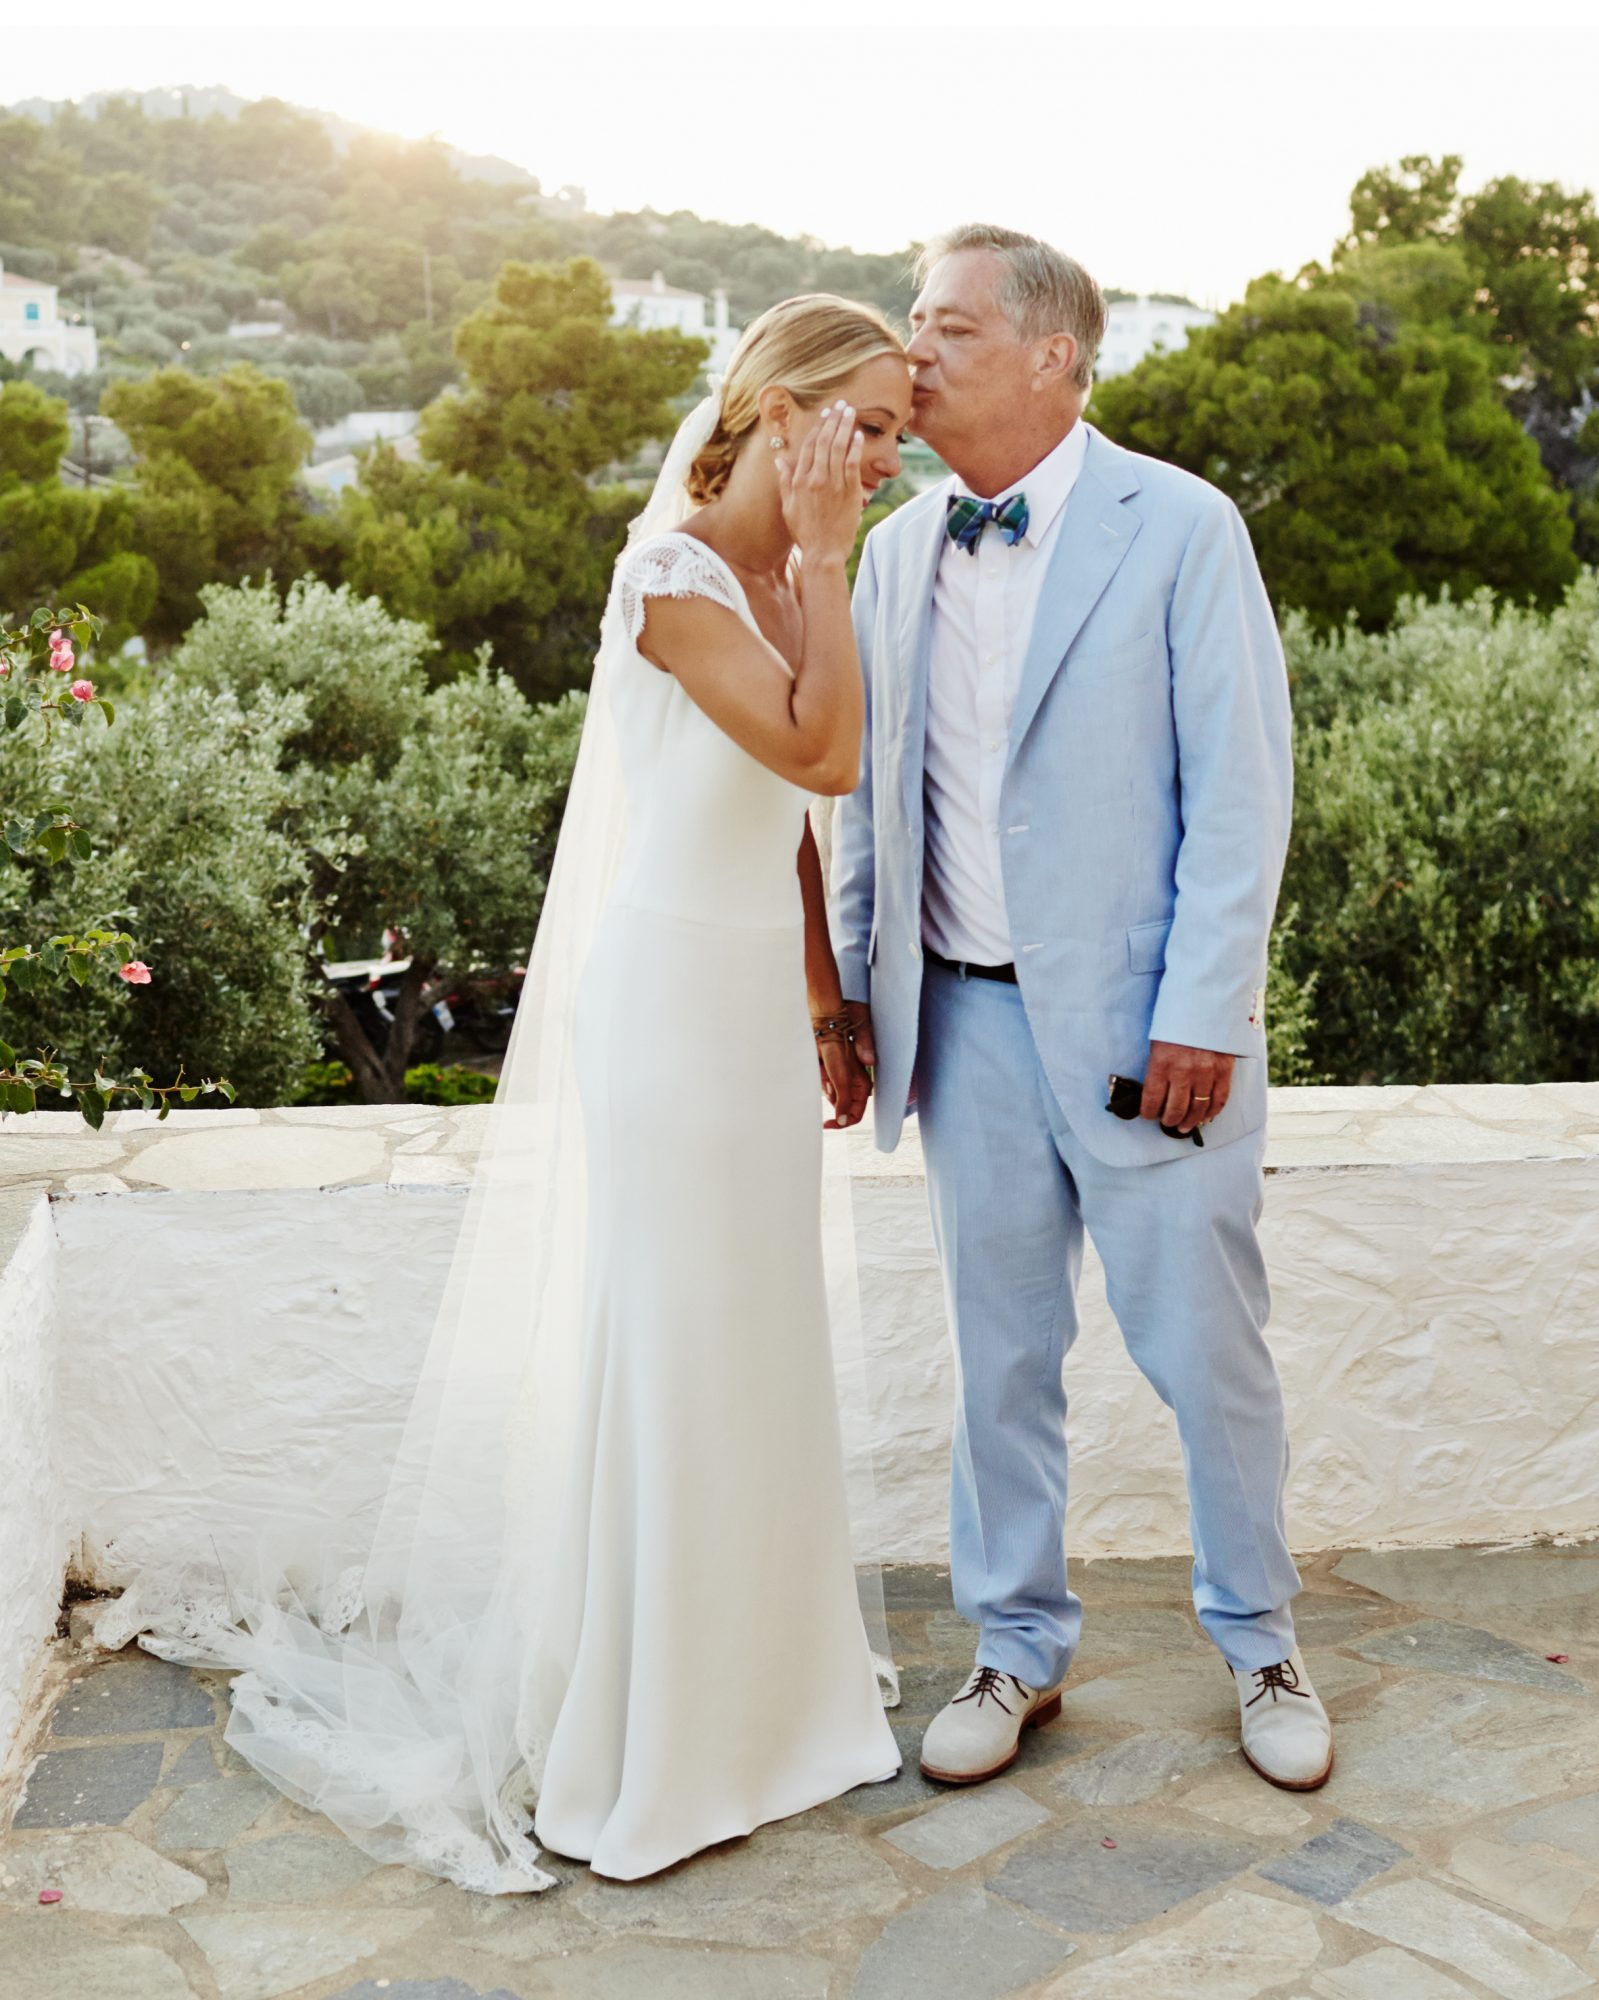 ana-alden-wedding-greece-611a4331-s111821.jpg